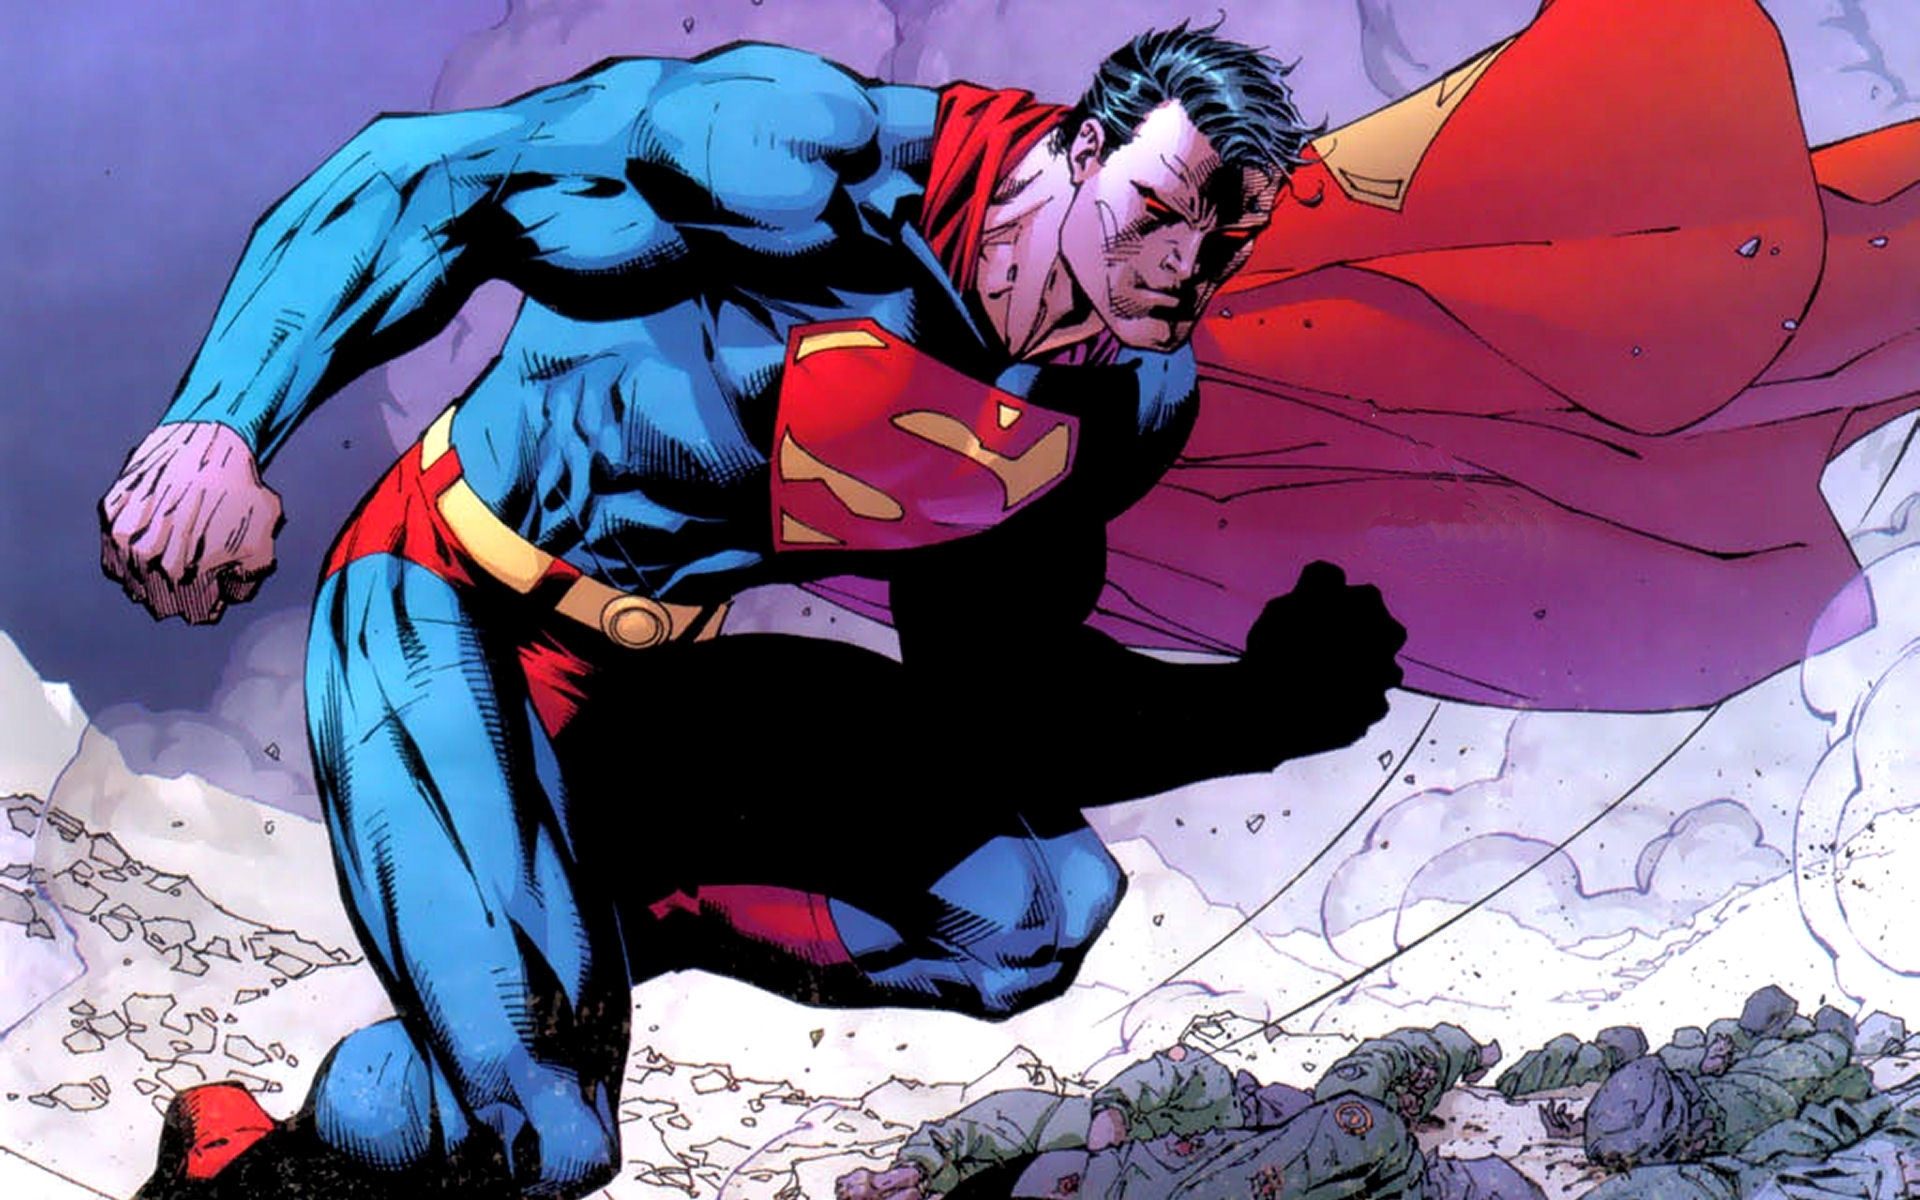 dc comics superman superheroes jim lee wallpaper | 1920x1200 | 54575